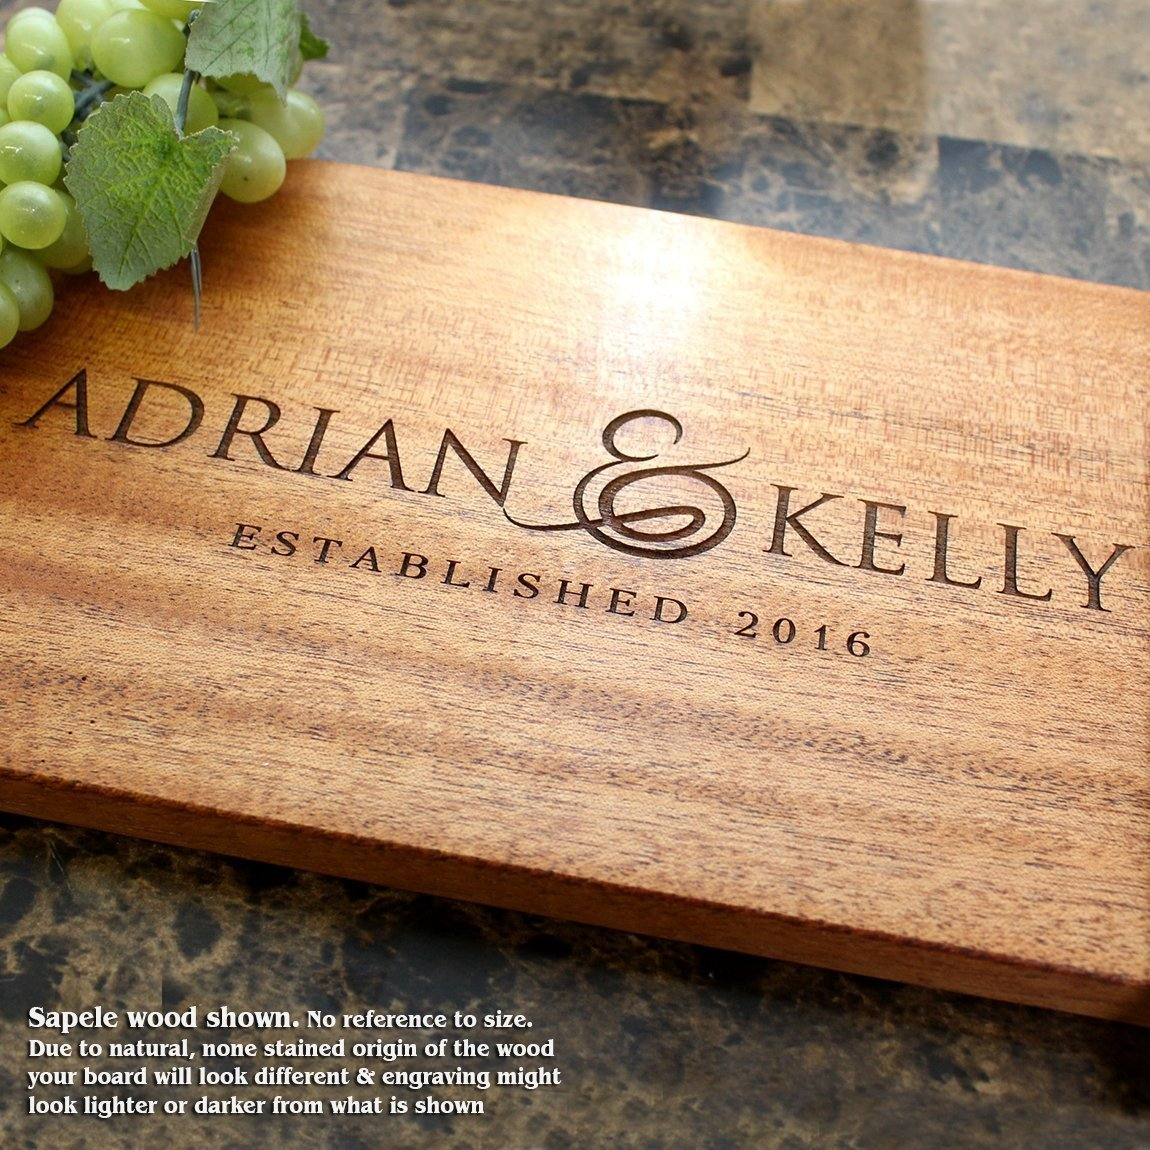 Personalized Cutting Board, Custom Keepsake, Engraved Serving Cheese Plate, Wedding, Anniversary, Engagement, Housewarming, Birthday, Corporate, Closing Gift #216